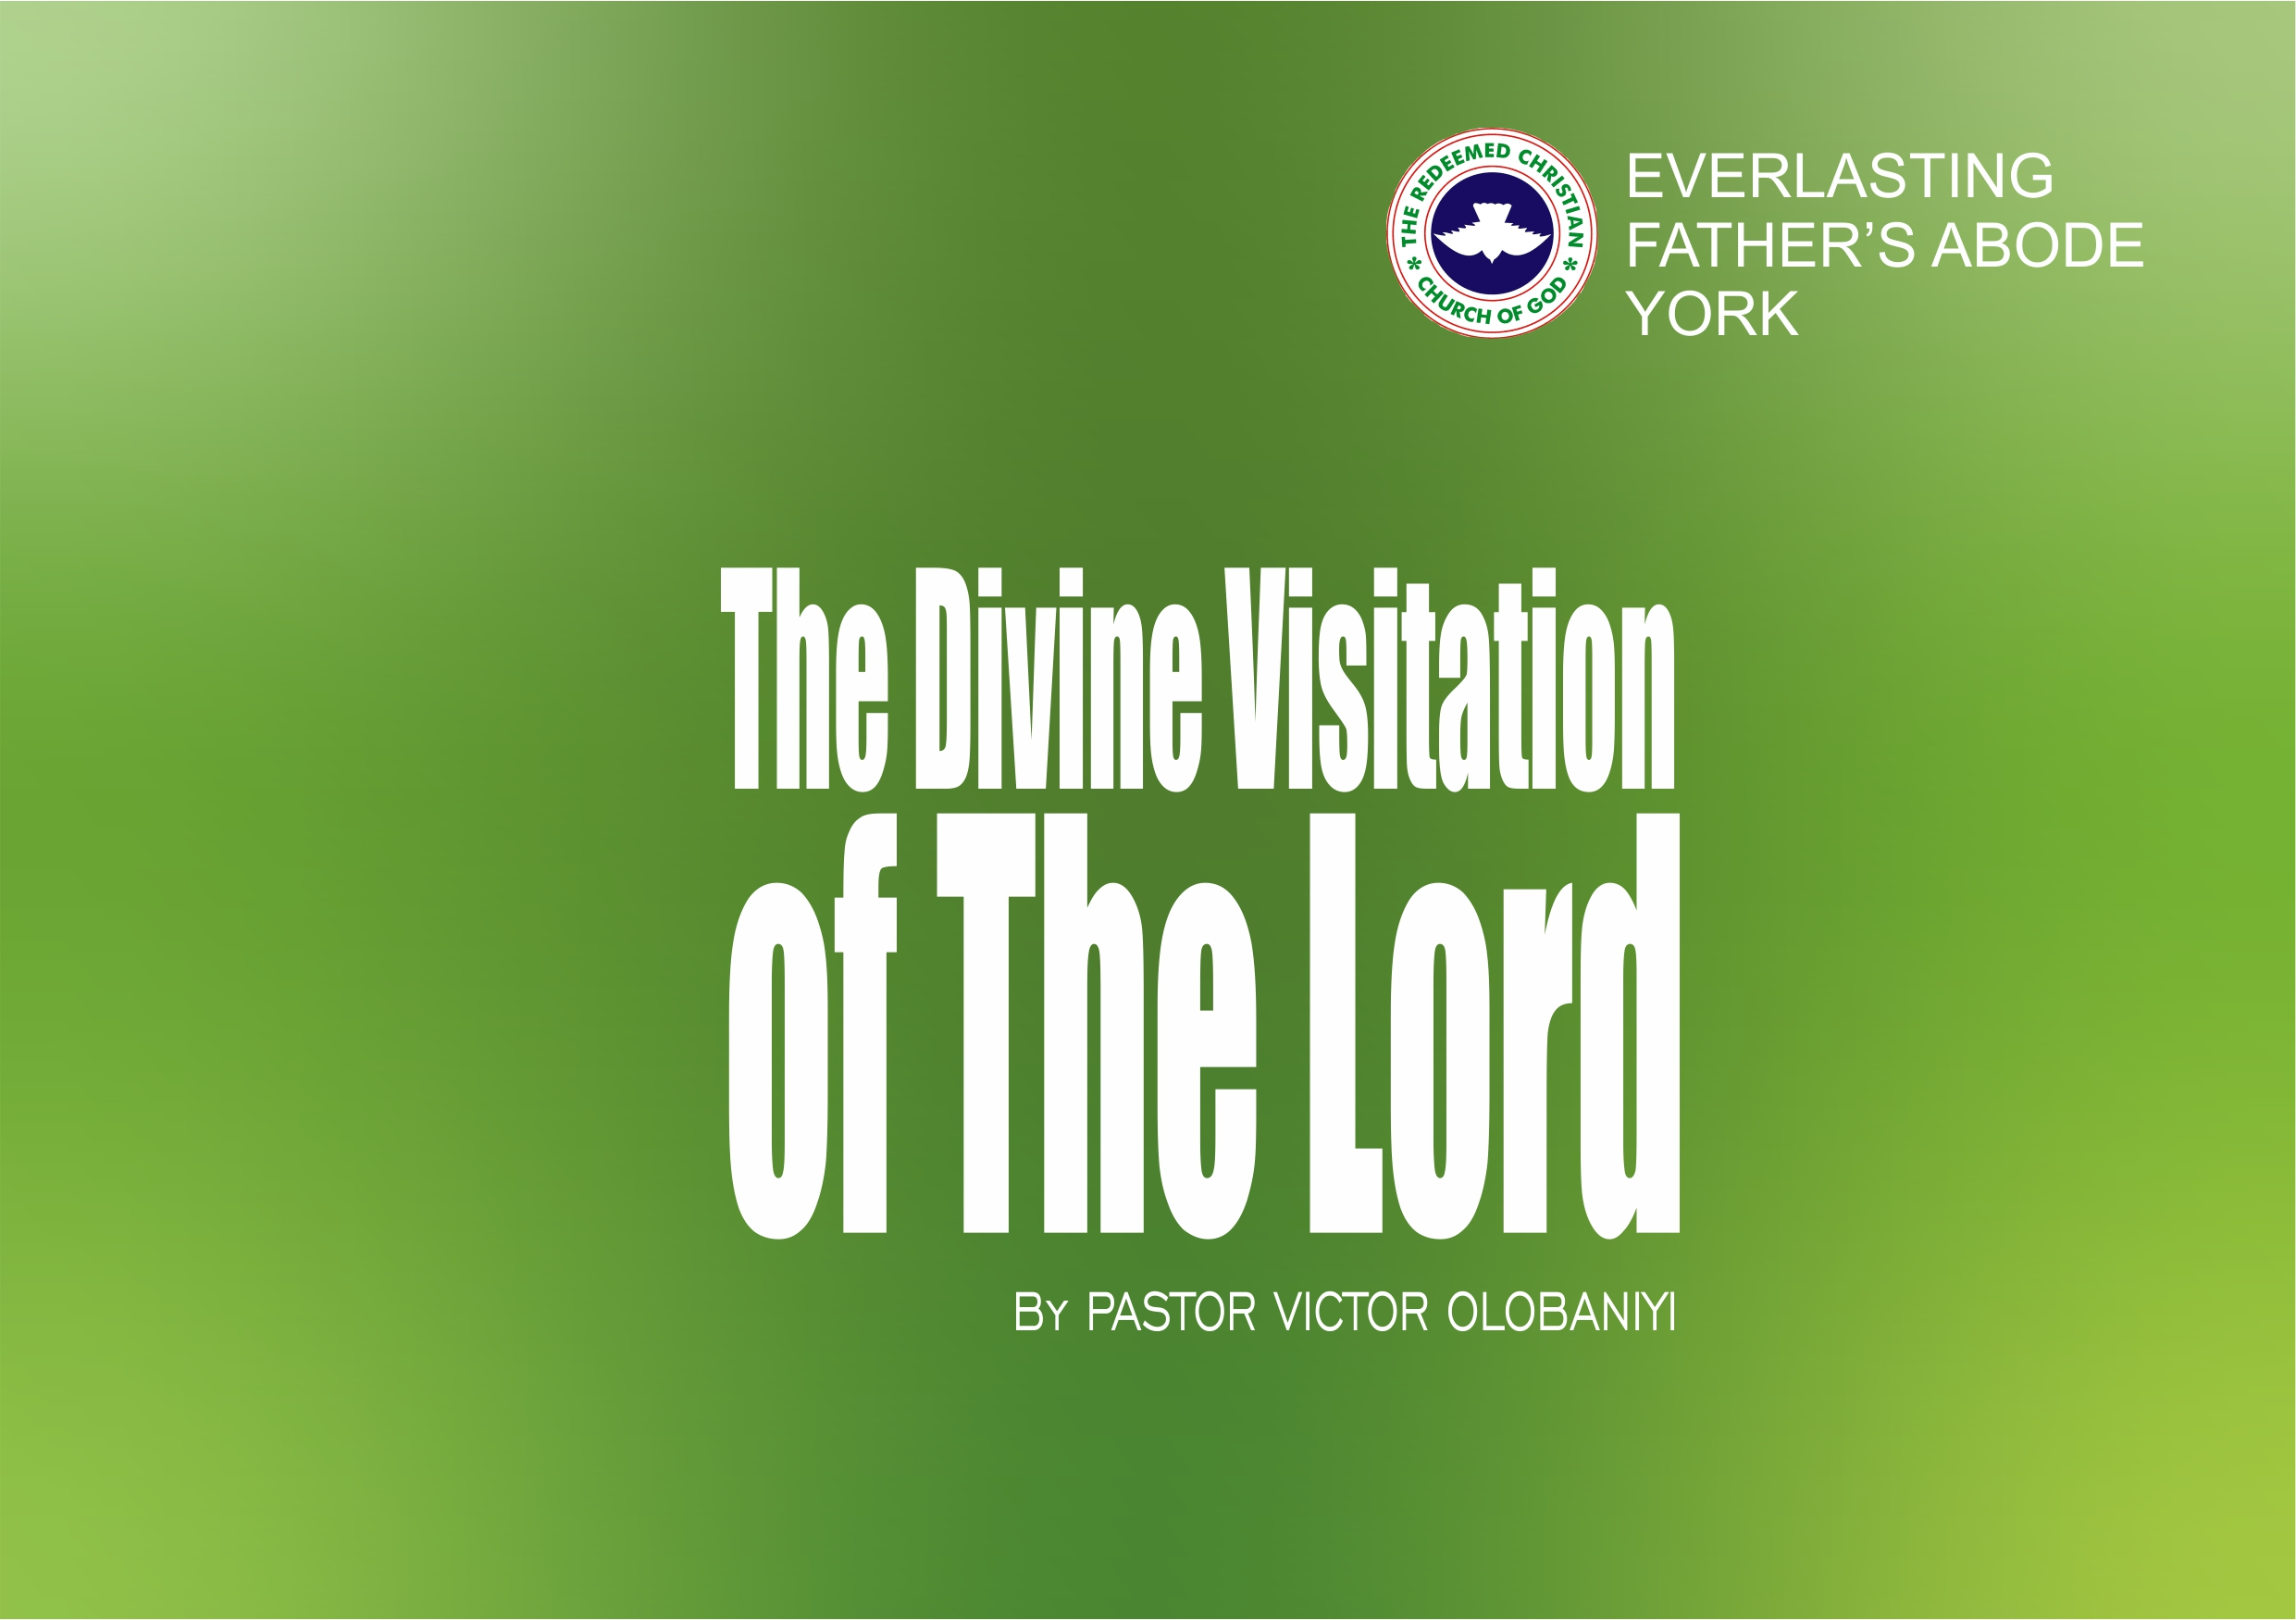 The Divine Visitation of The Lord, by Pastor Victor Olobaniyi